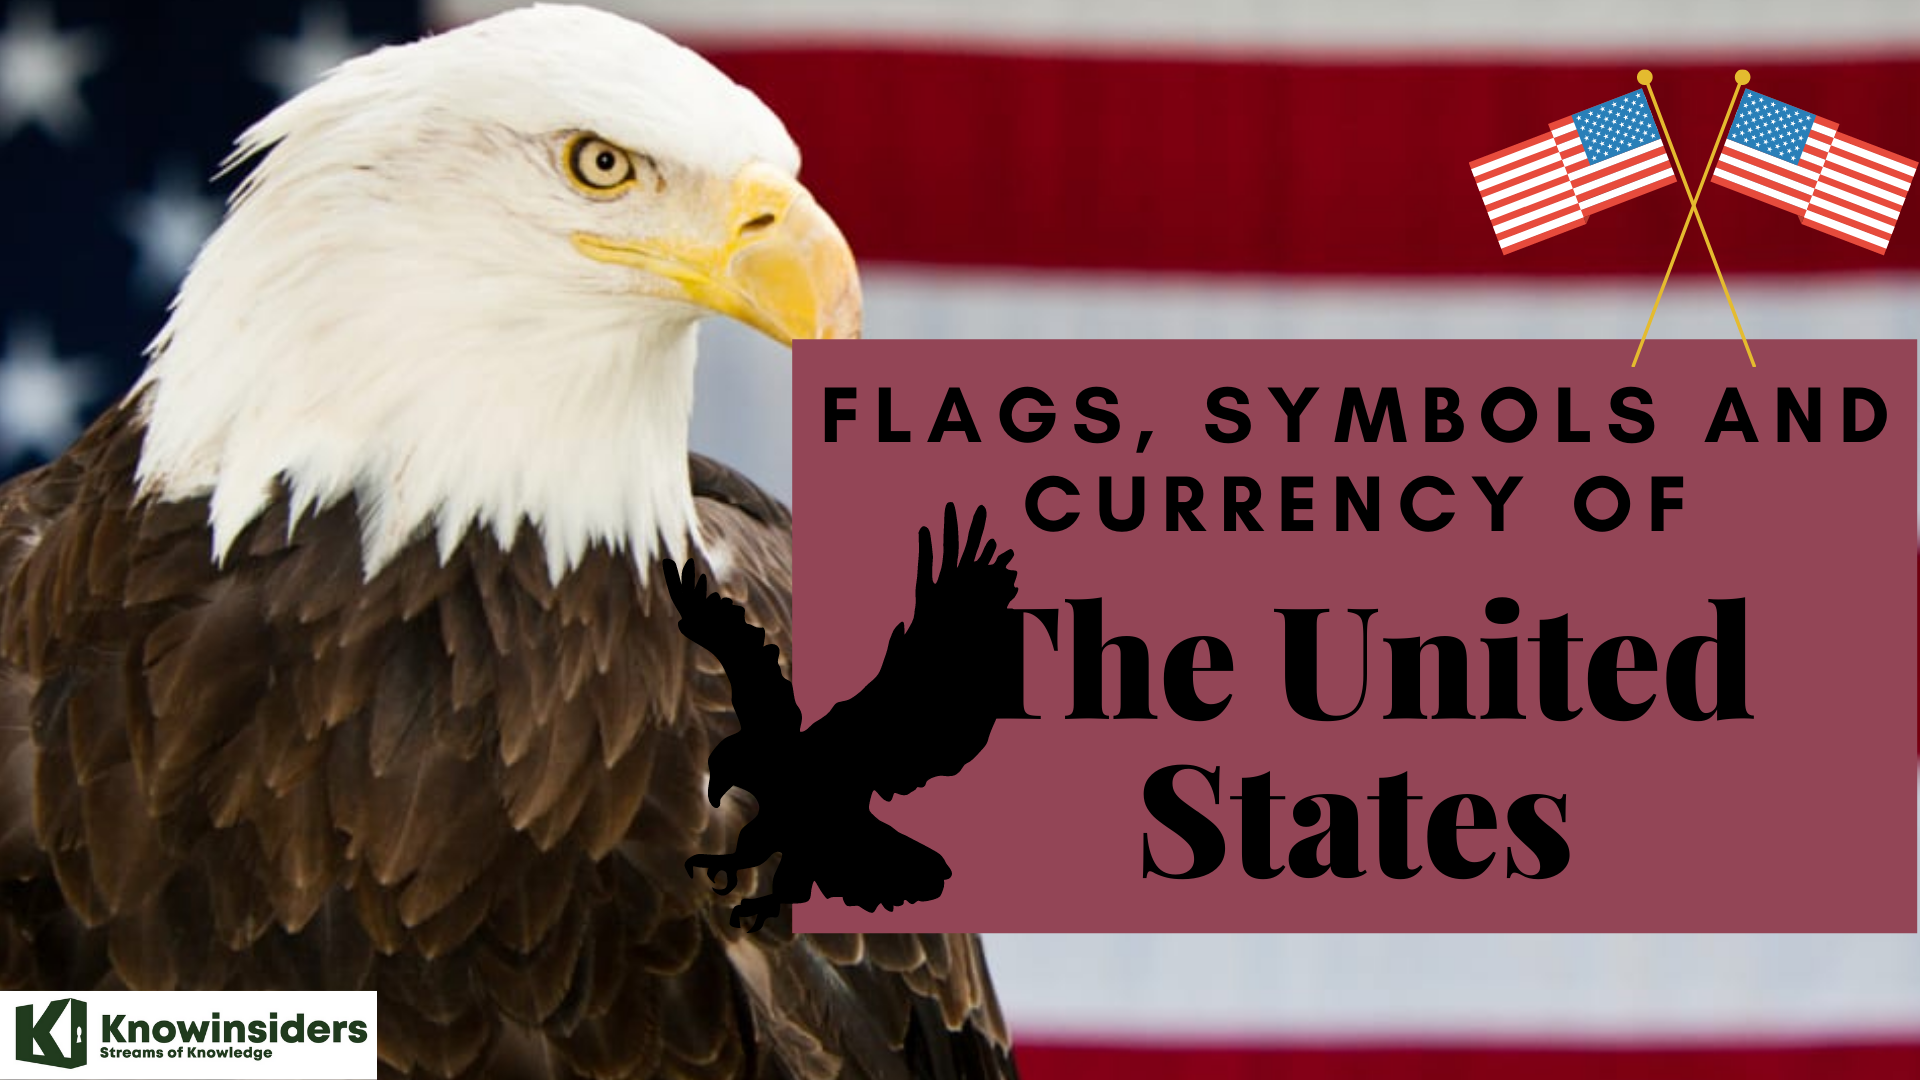 Flags, Symbols and Currency of the United States